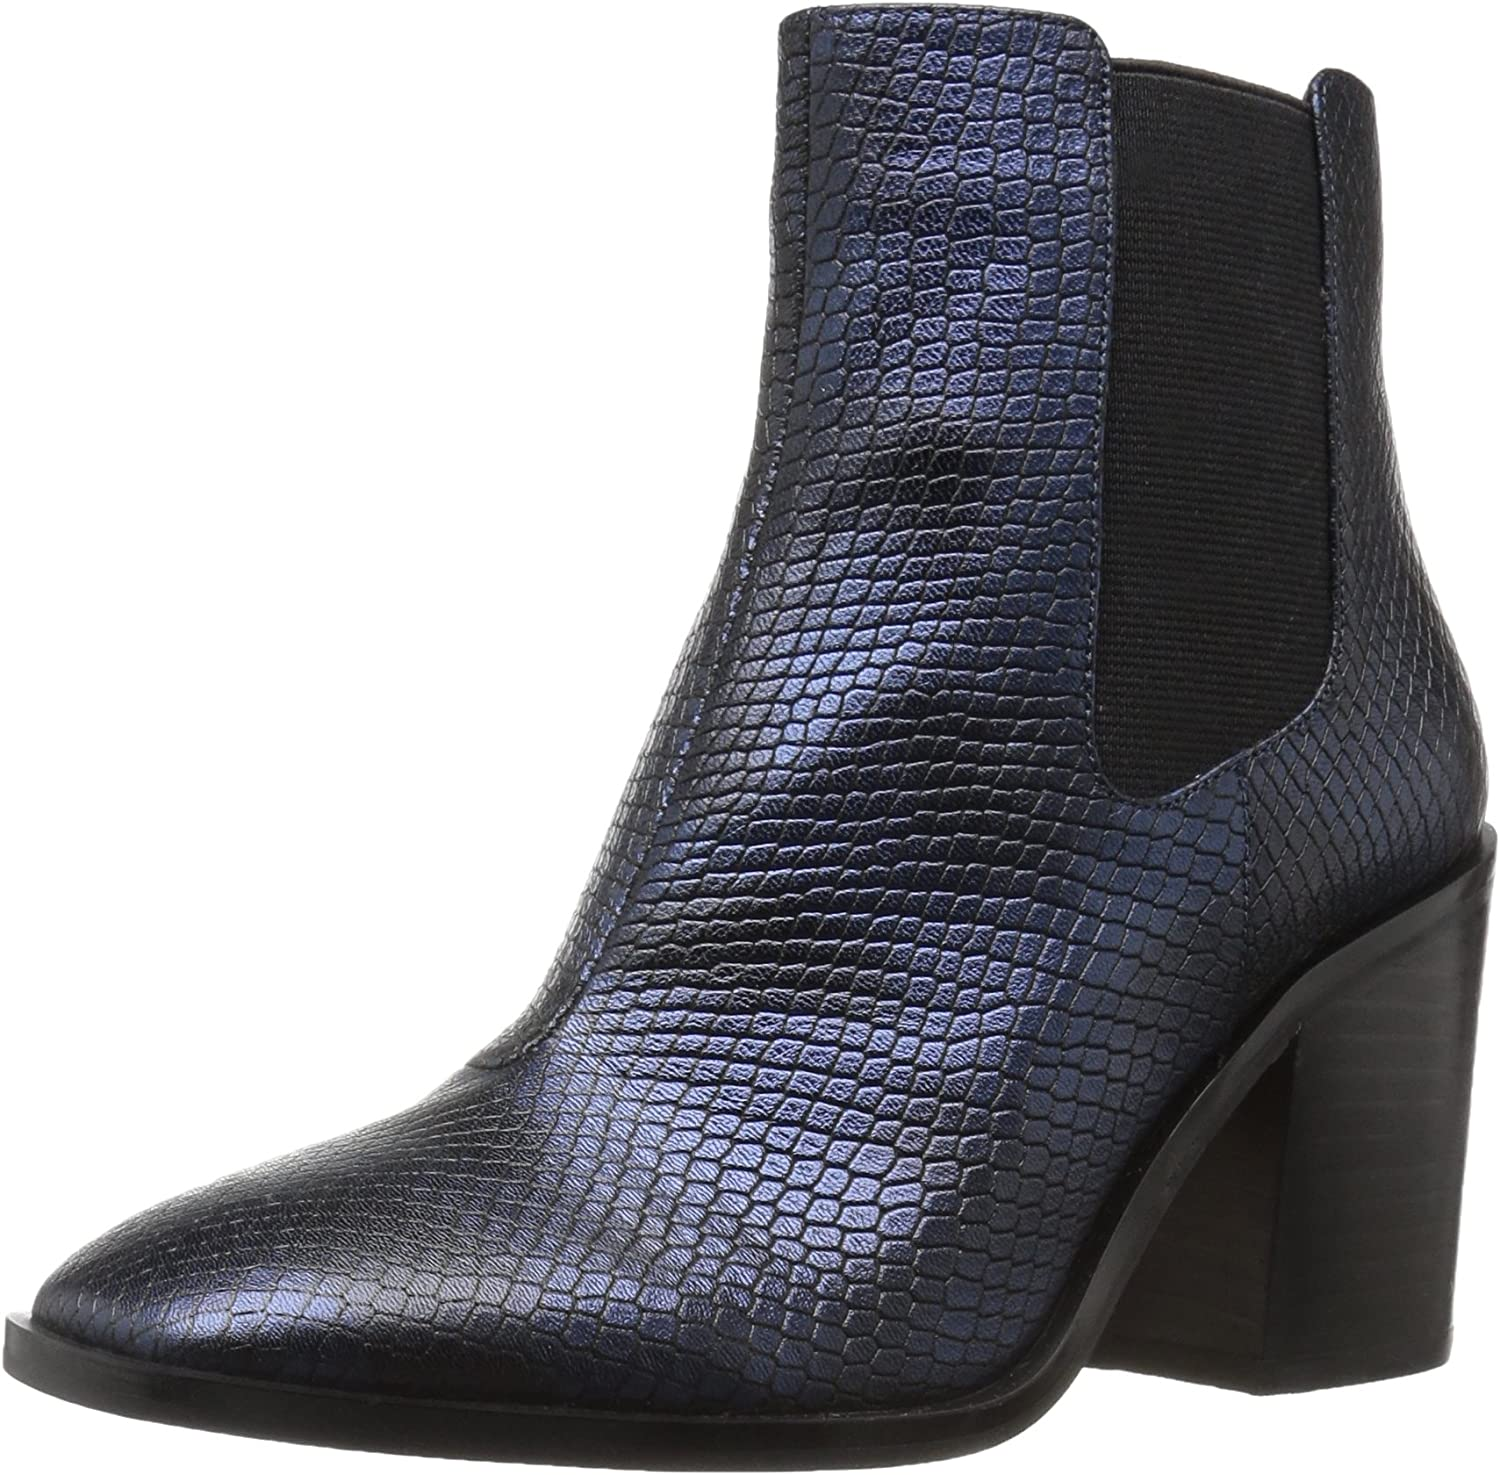 The Fix Womens Delany Block-Heel Chelsea Boot Ankle Bootie